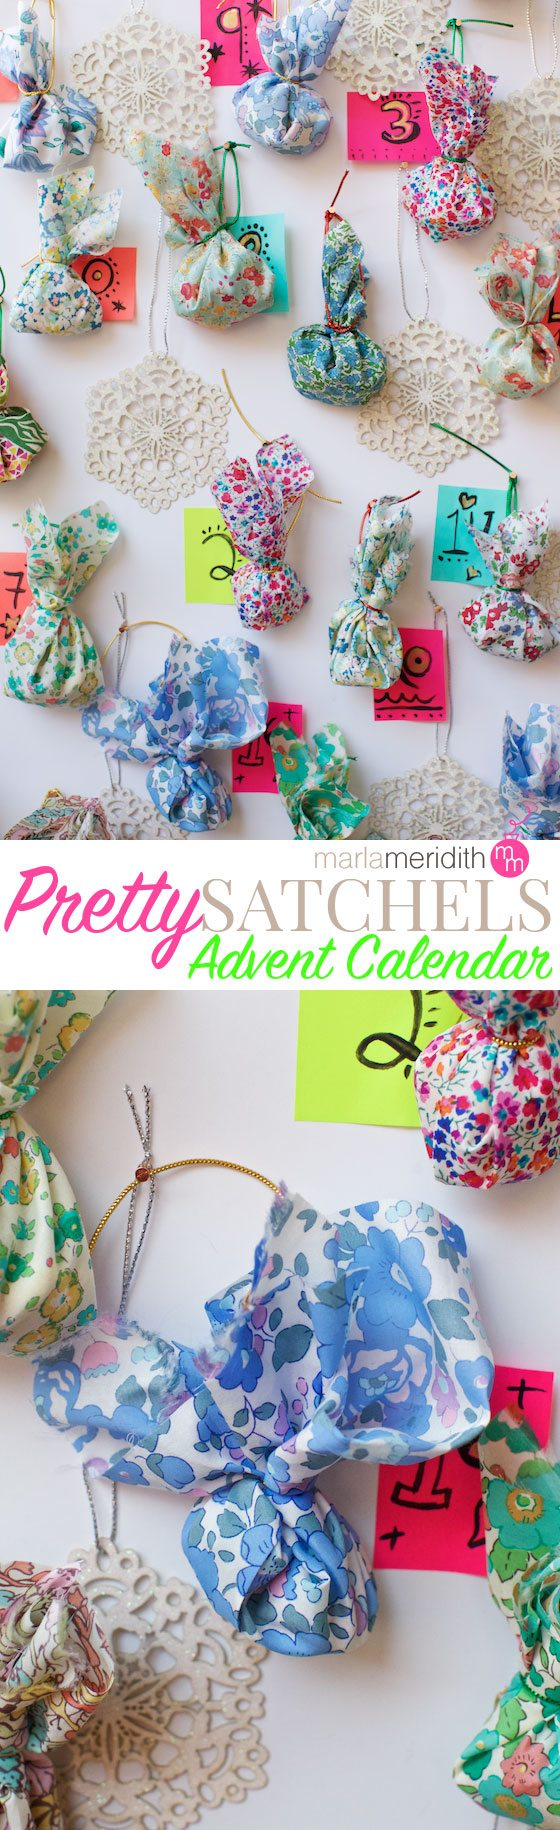 Pretty Satchels Advent Calendar DIY Craft. Make the countdown to Christmas more fun! MarlaMeridith.com ( @marlameridith )